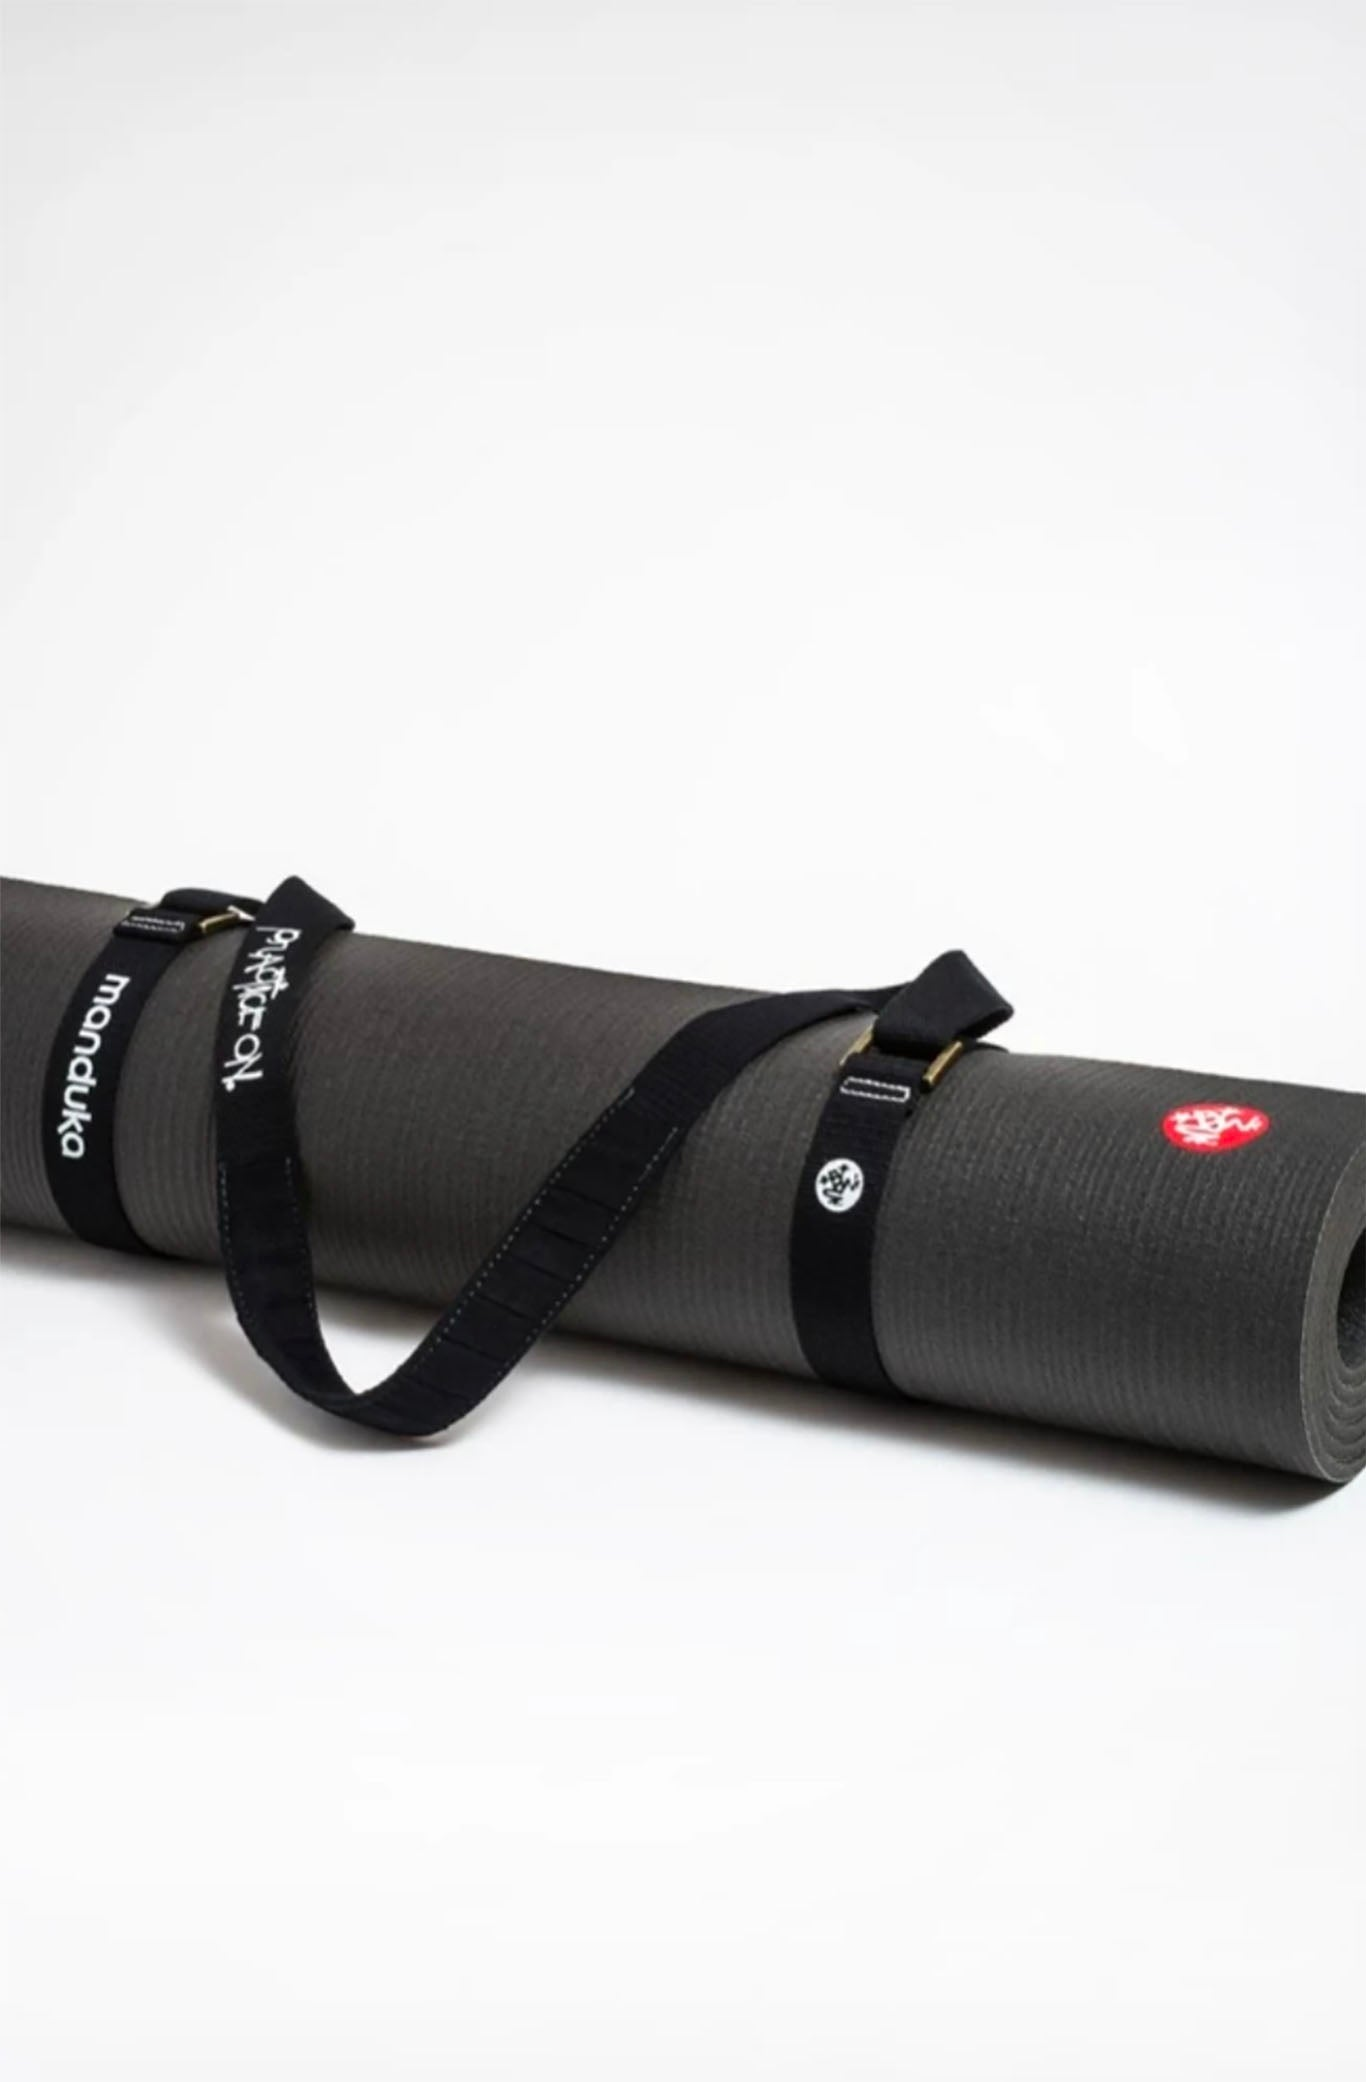 Commuter Mat Carrier 3 - Black - Manduka